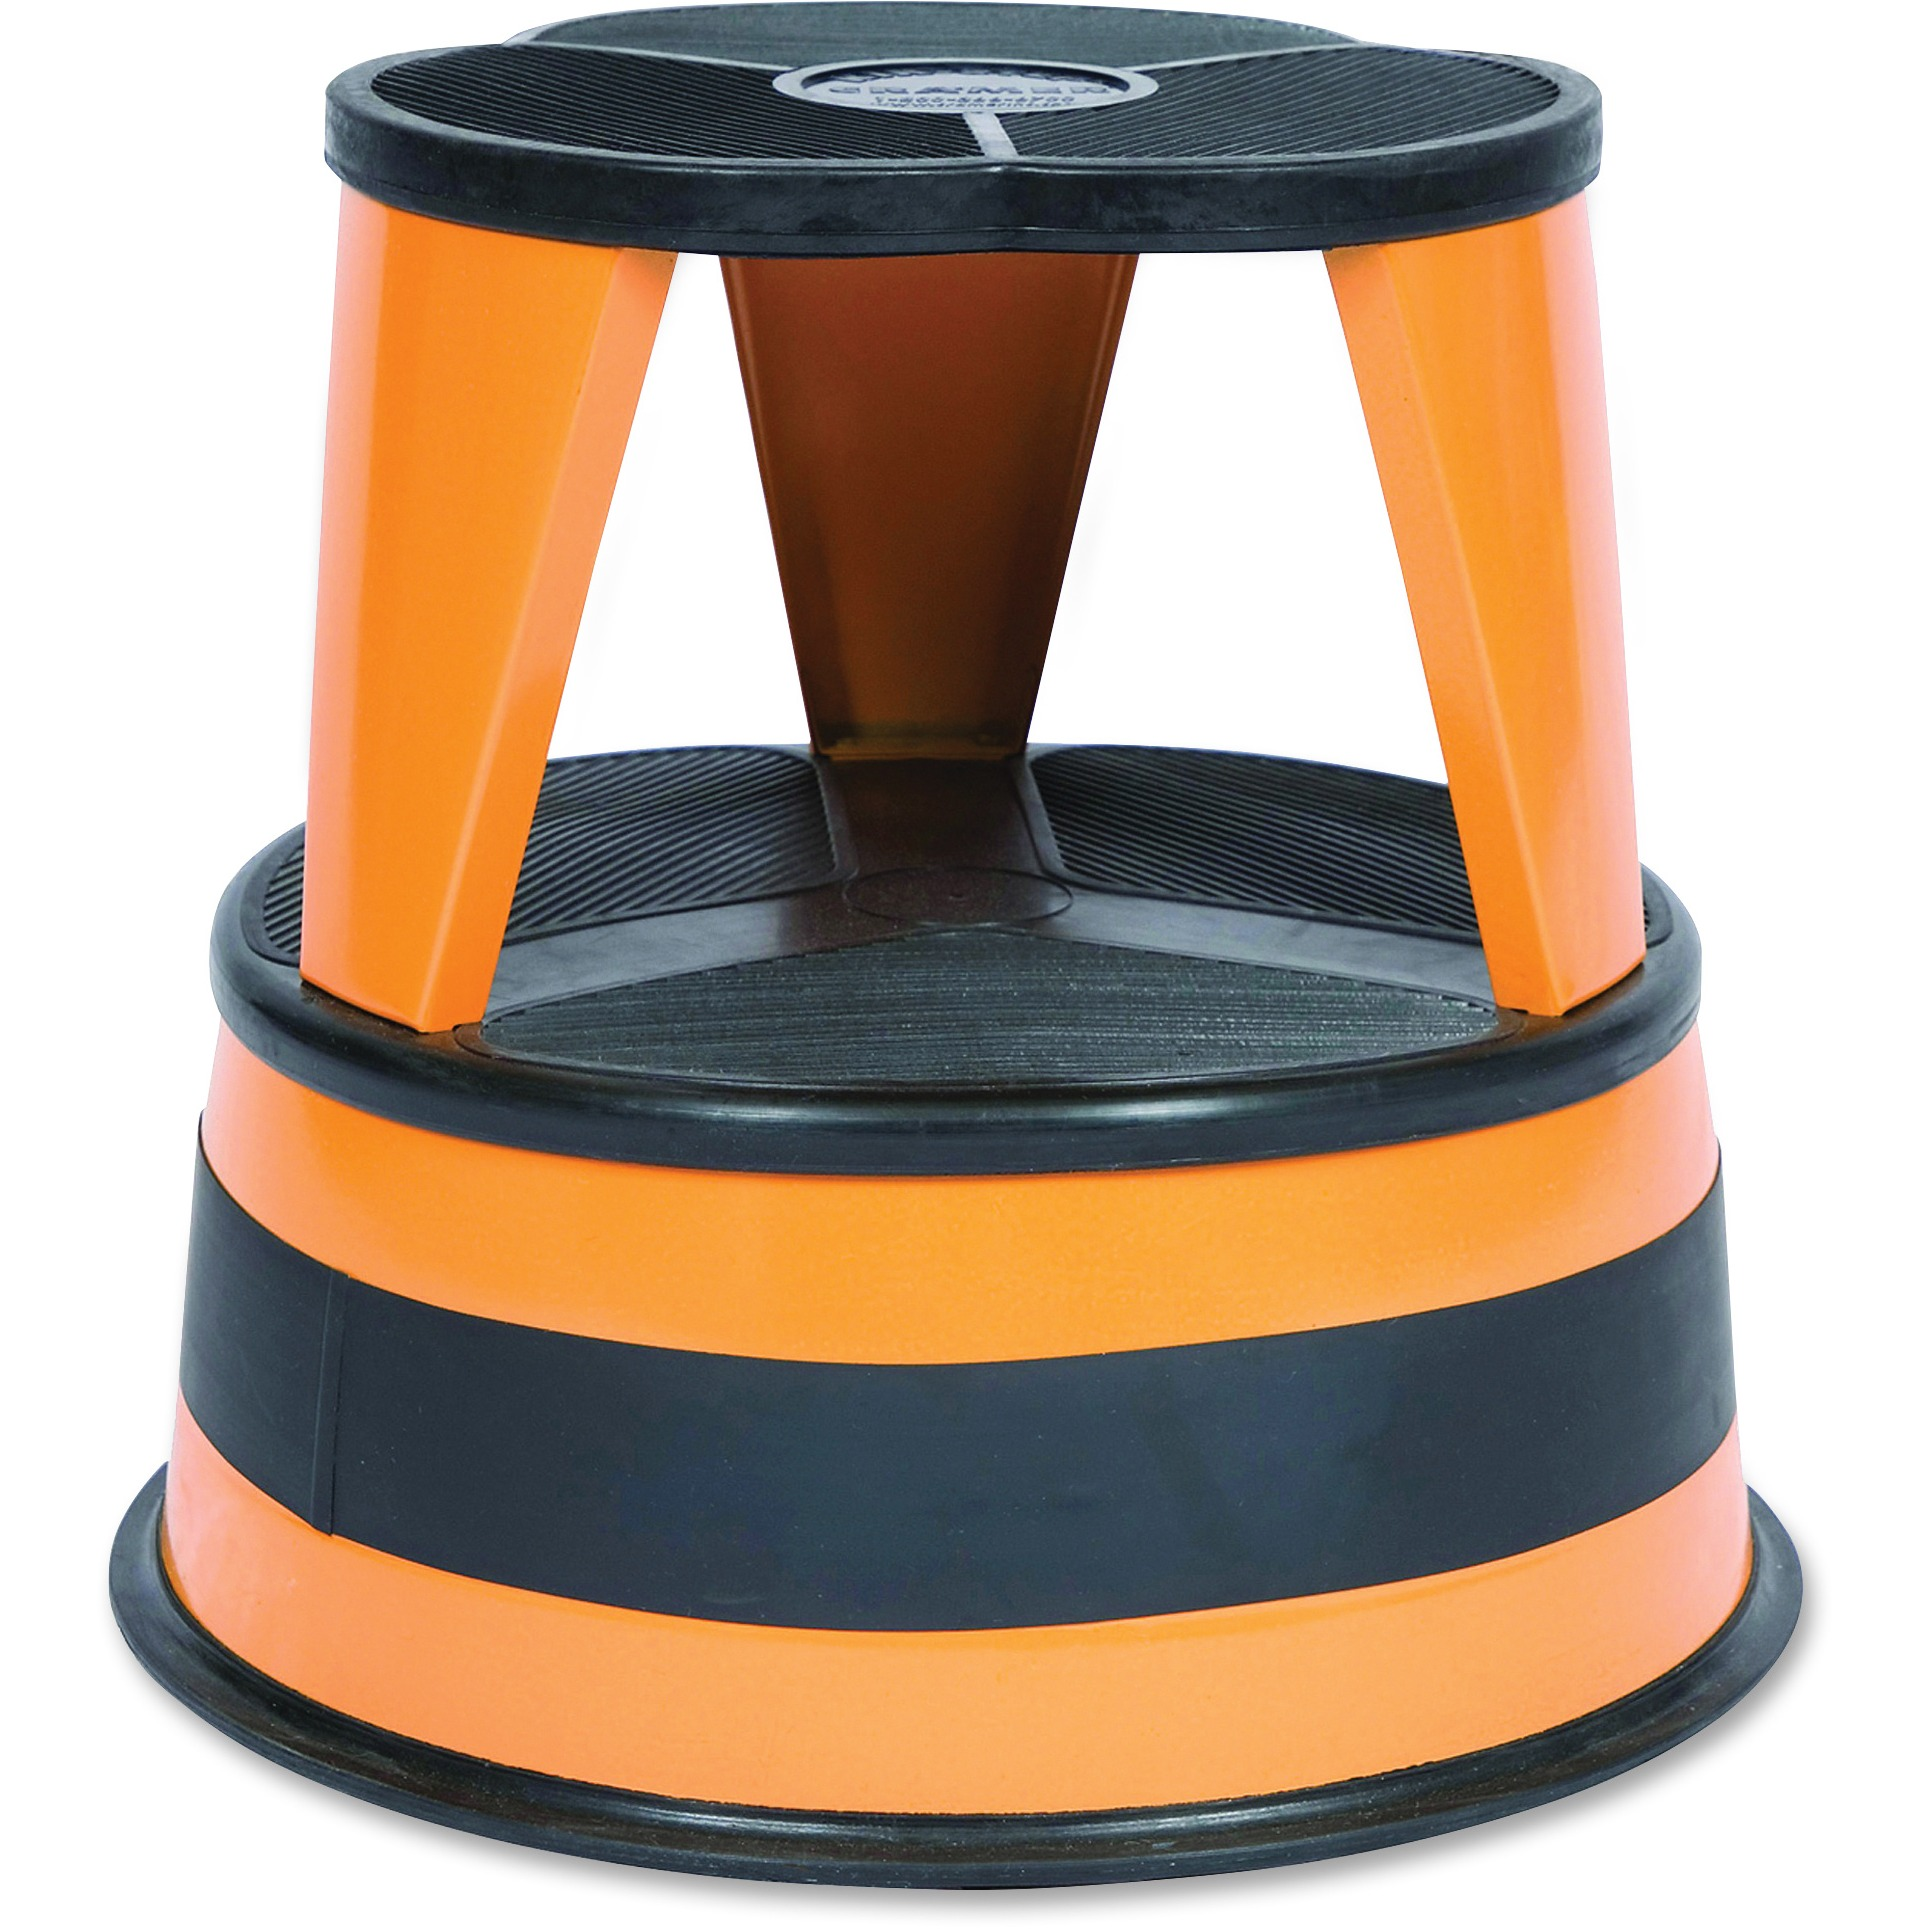 "Cramer Kik-Step Steel Step Stool, 350 lb cap, 16"" dia. x 14 1/4h, Orange"